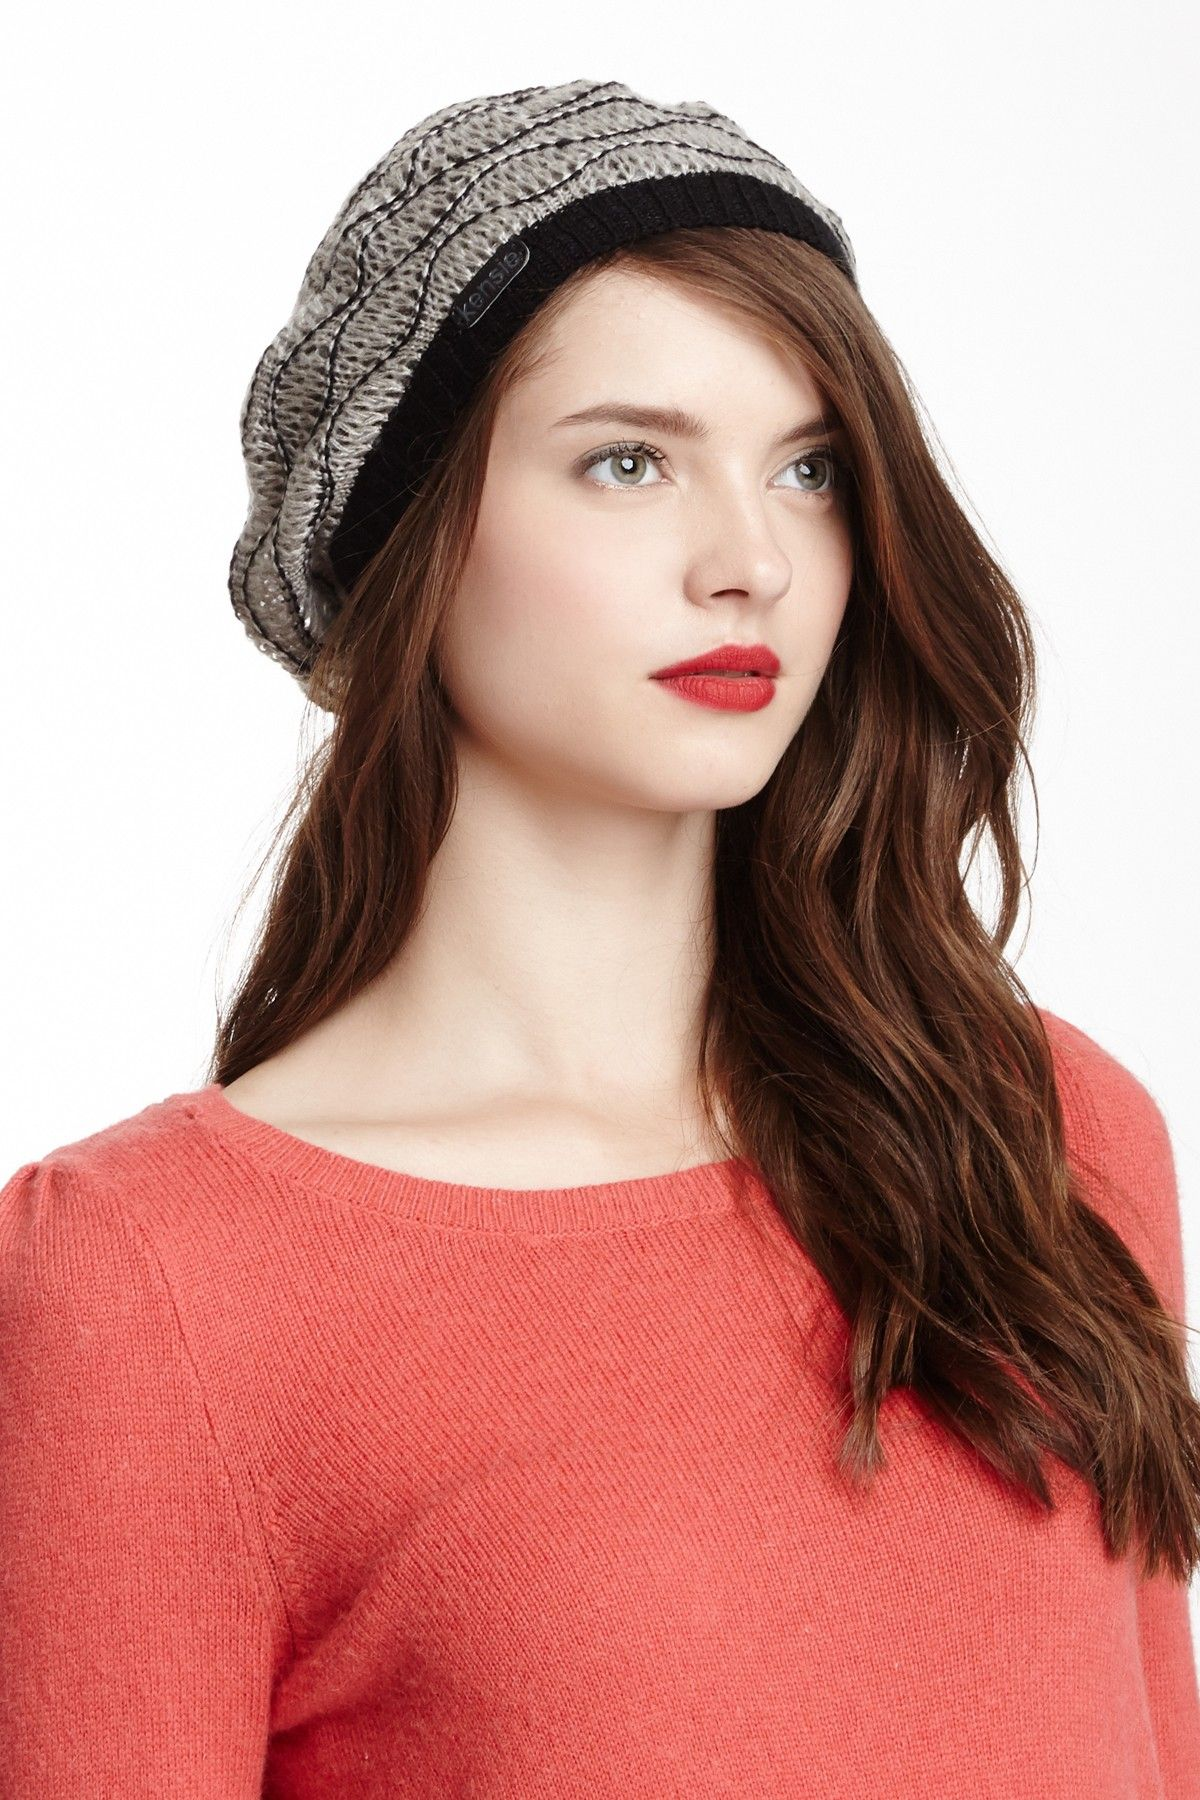 Kensie Wave Stitch Beret BeretWomen #Accessories | s | Pinterest ...